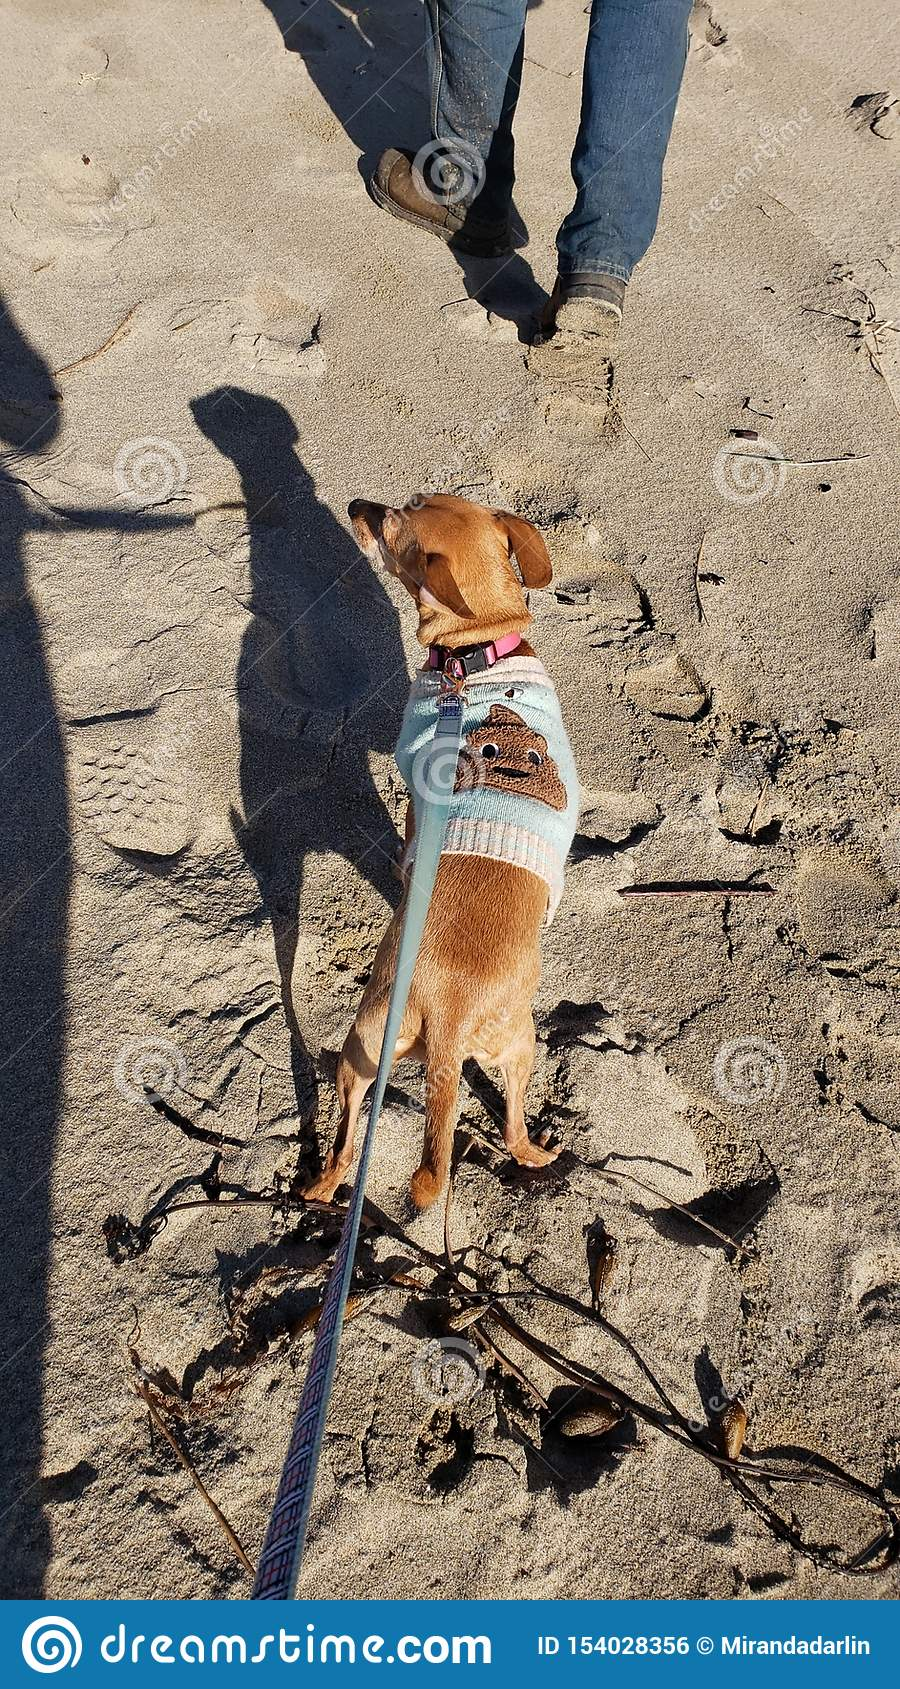 Moose in a Turd sweater on the beach